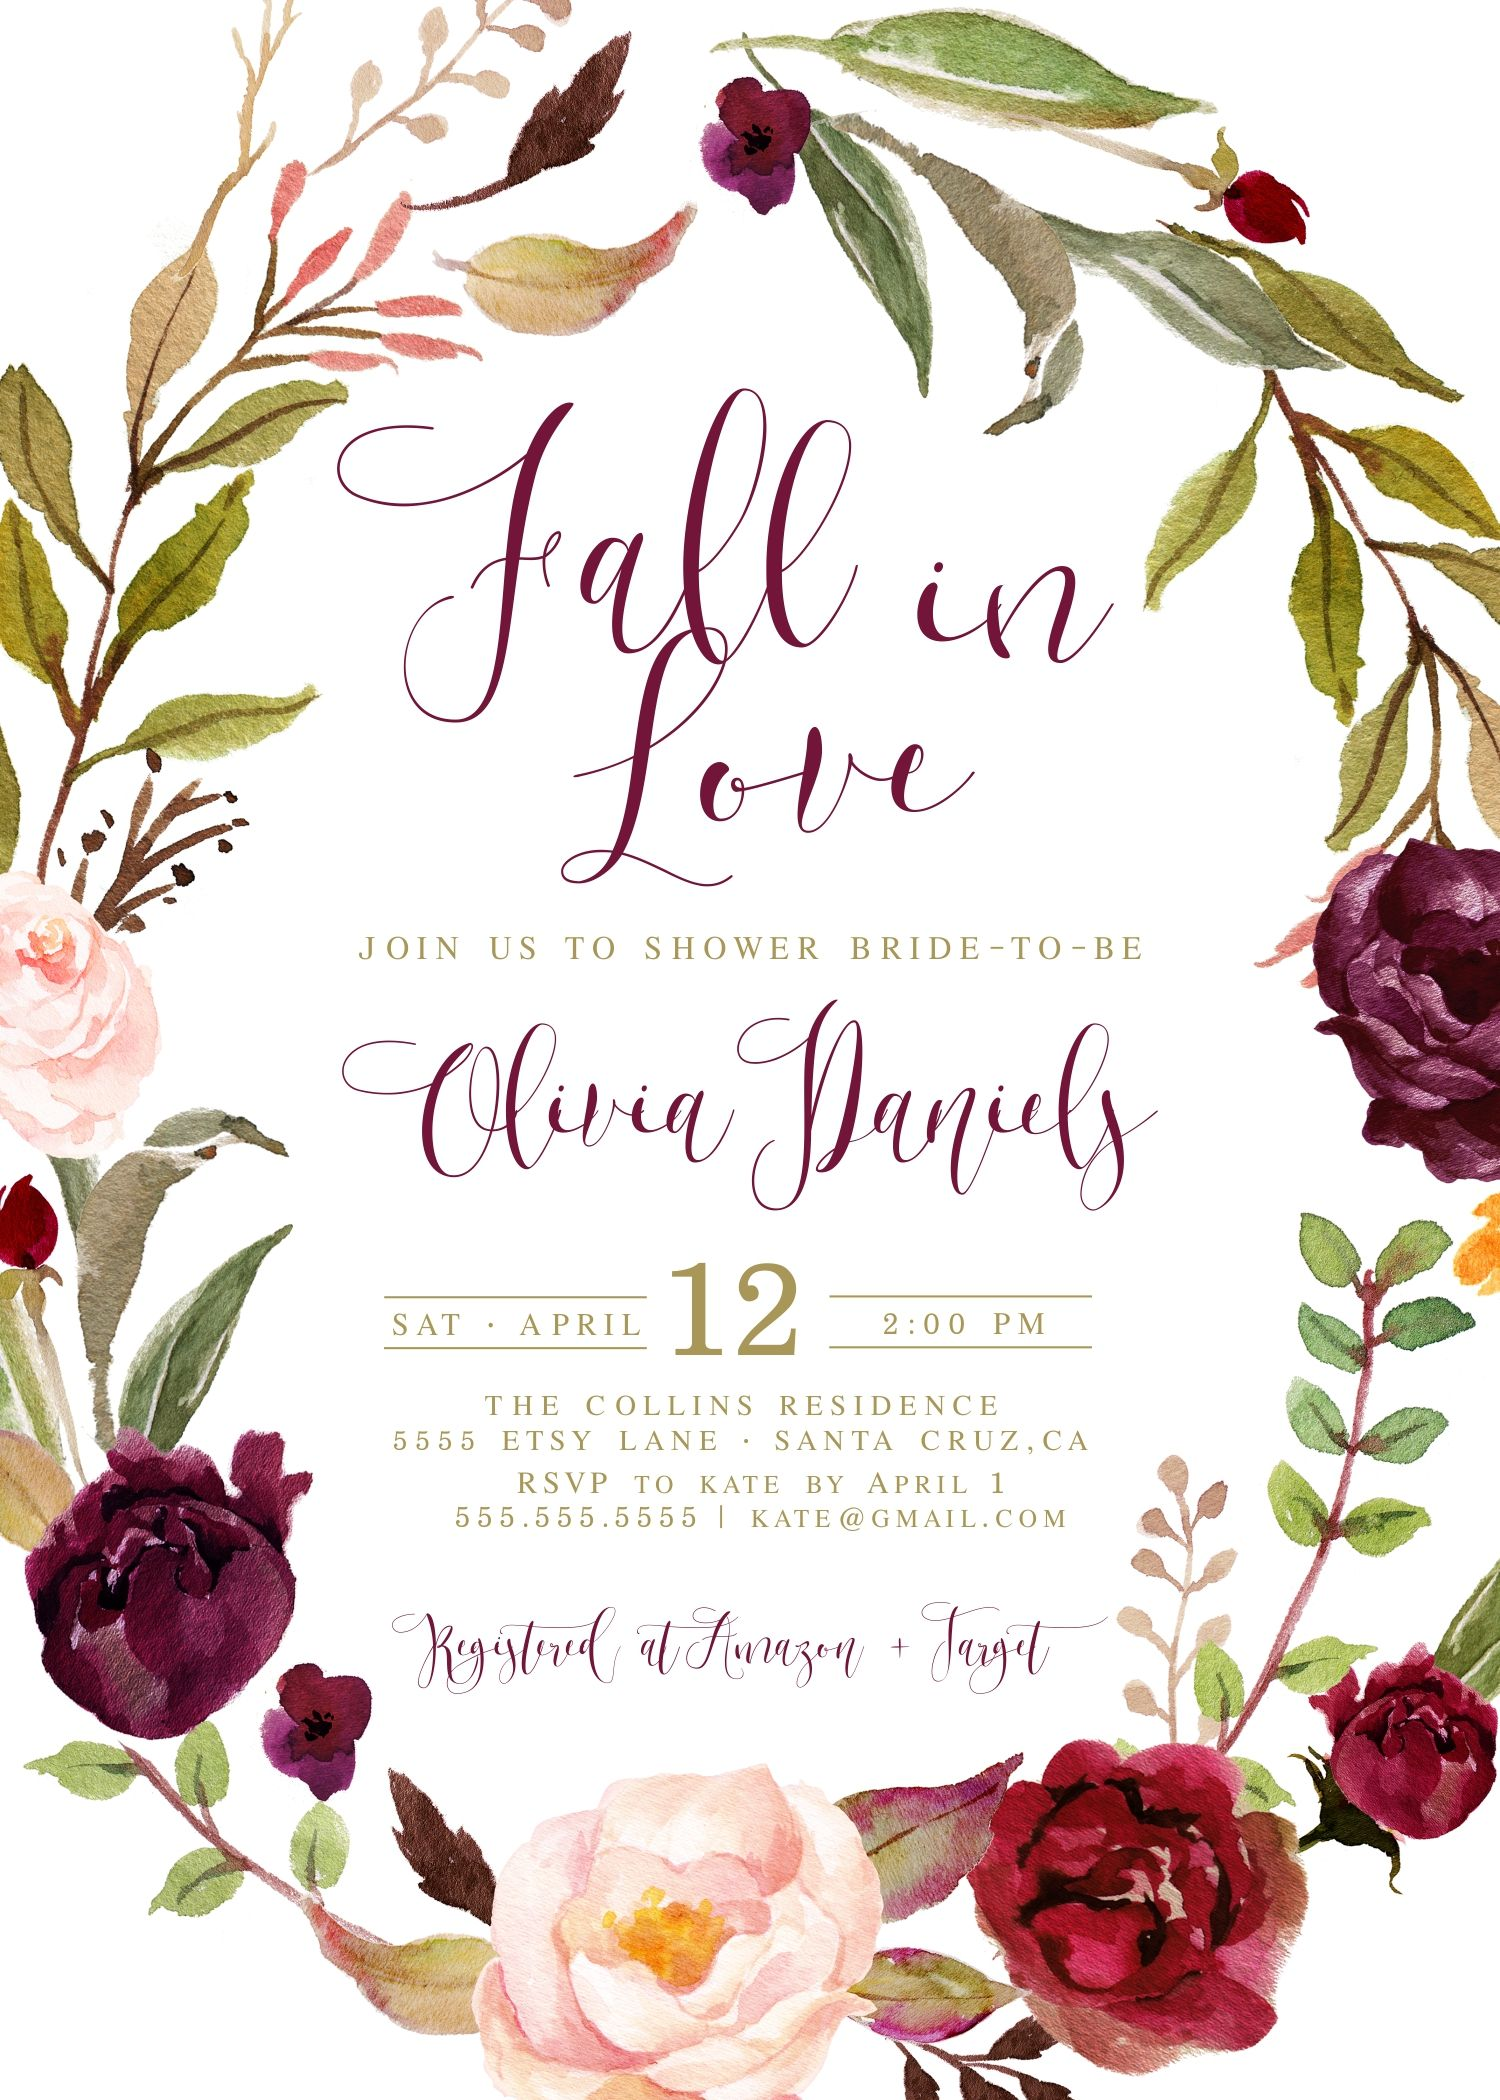 We may earn commission on some of the items you choose to buy. Fall In Love With This Autumn Bridal Shower Invitatoin Fall Bridal Shower Invitations For Au Fall Bridal Shower Invites Fall Wedding Shower Fall Bridal Shower